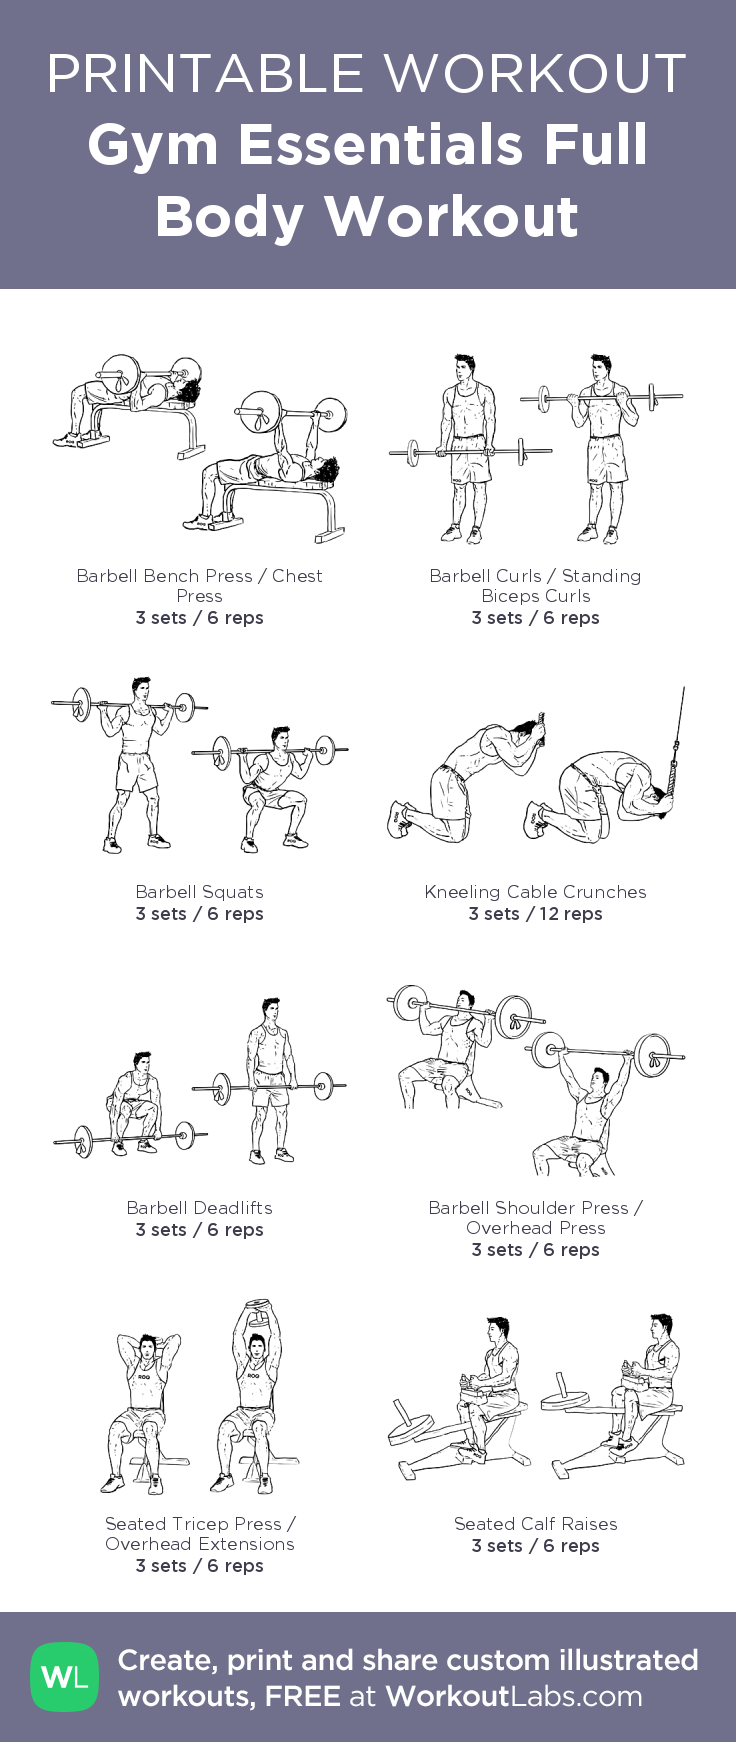 Gym Essentials Full Body Workout Illustrated Exercise Plan Created At WorkoutLabs O Click For A Printable PDF And To Build Your Own Customworkout